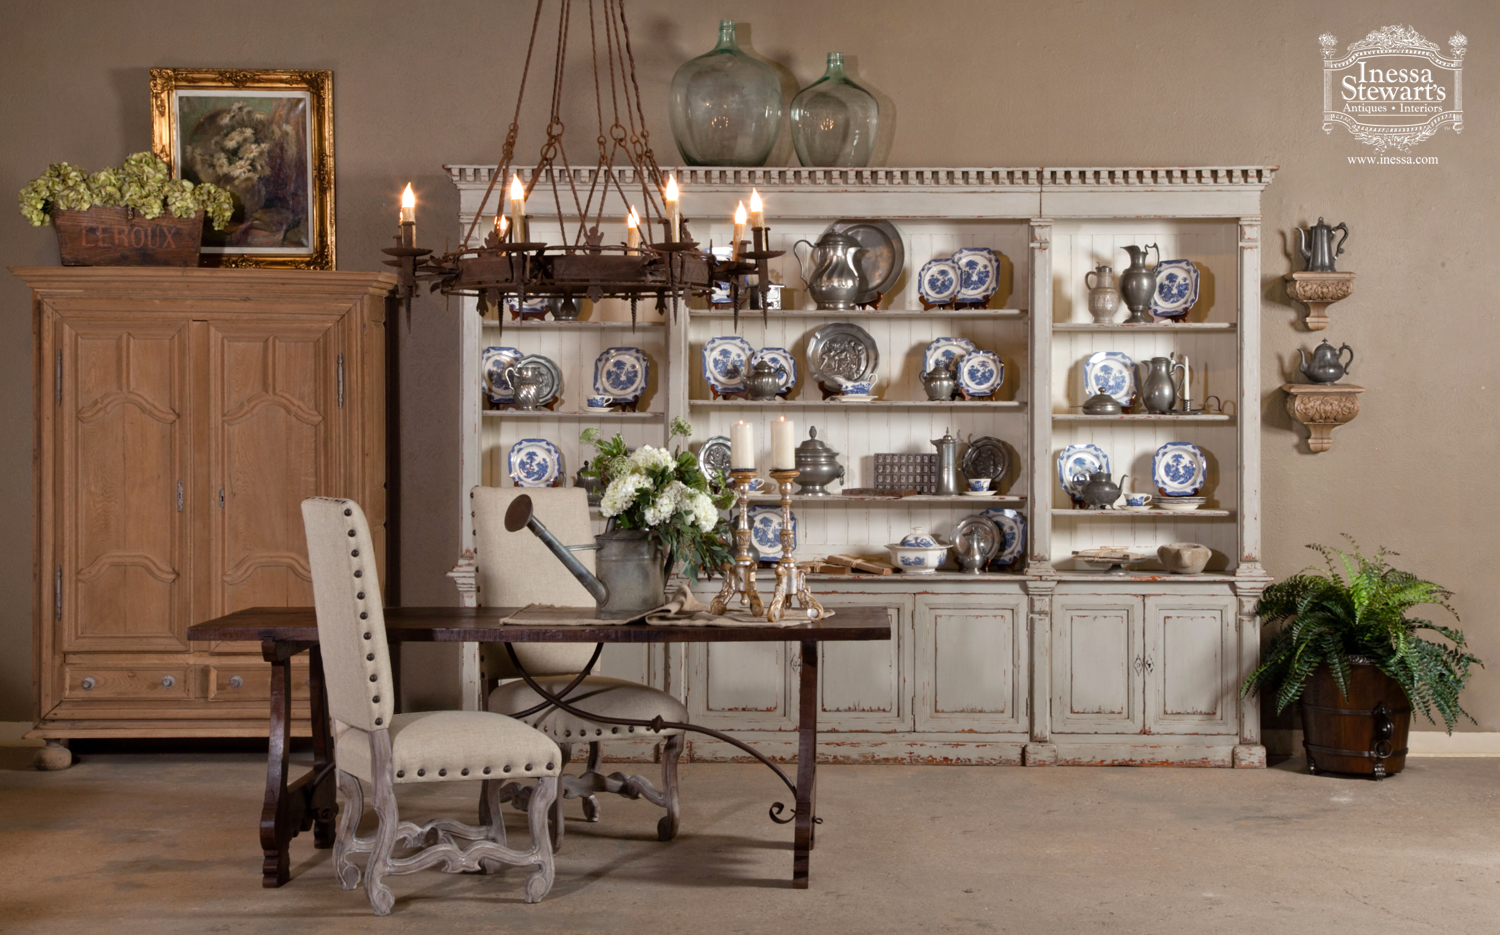 Antiques in Style Beverly Drive Magazine Inessa Stewart's Antiques